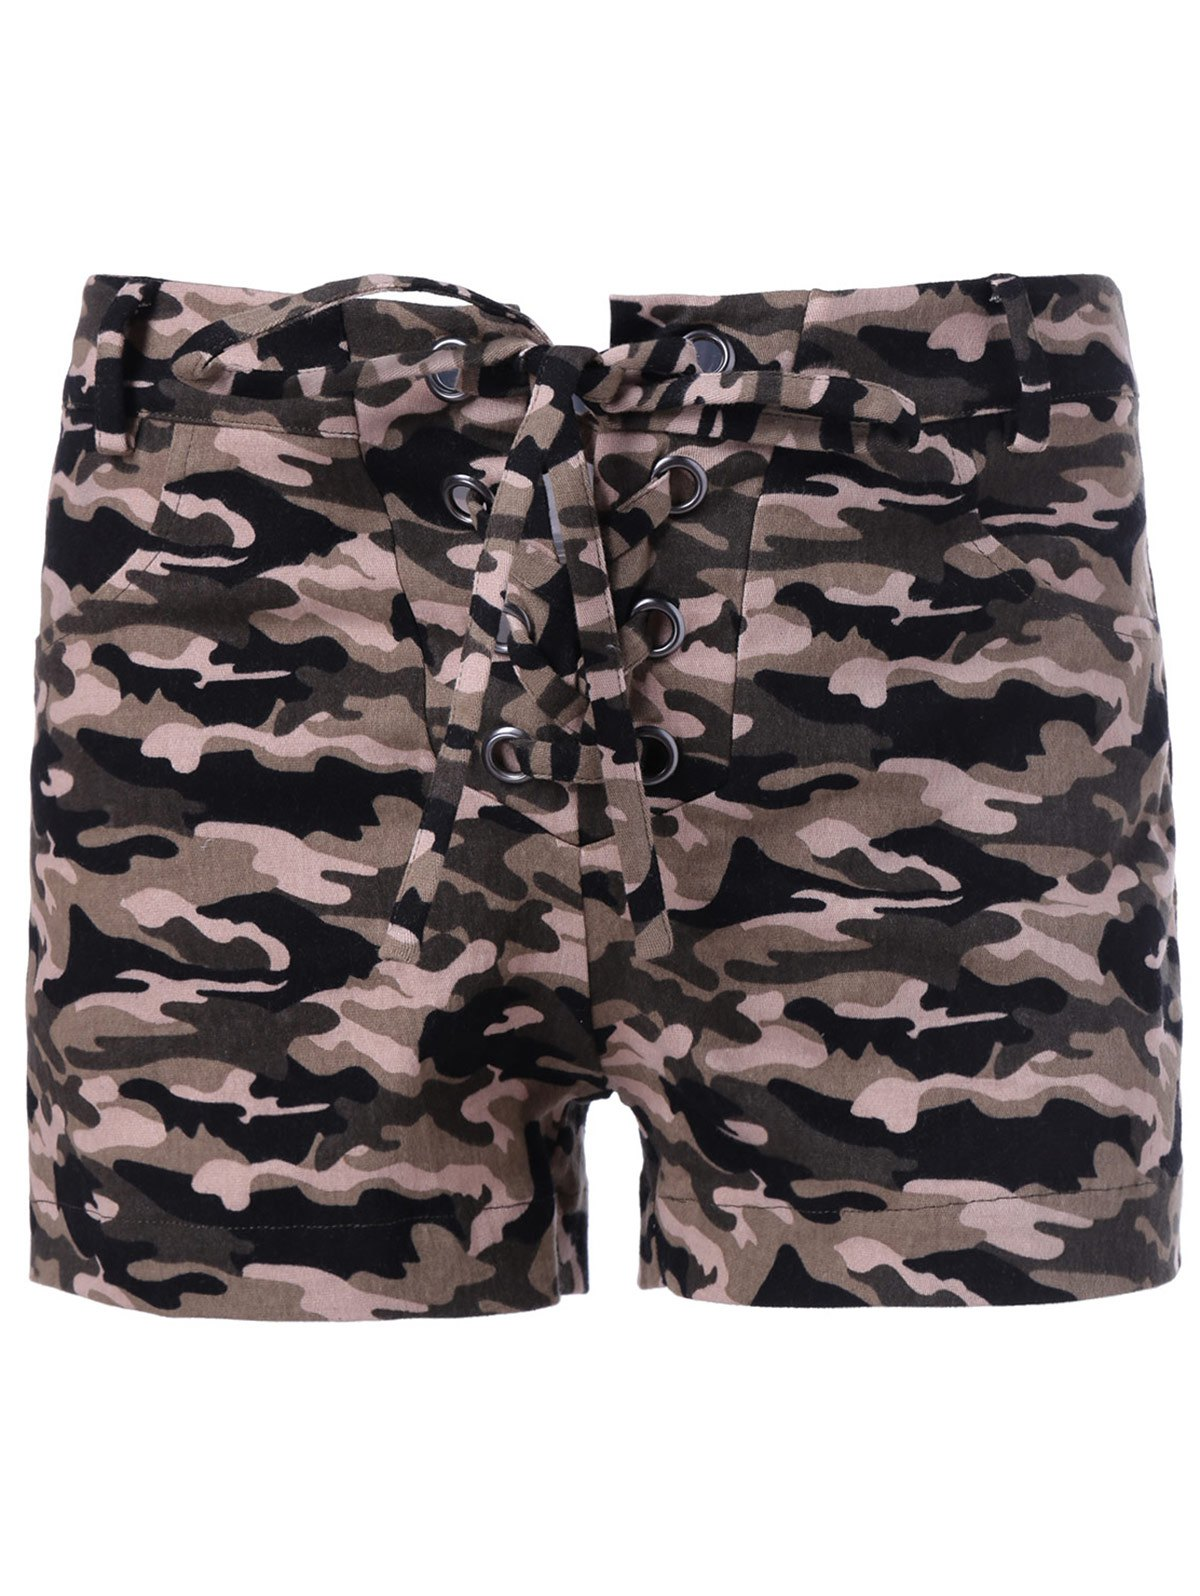 Trendy Camouflage Print Shorts For WomenWomen<br><br><br>Size: L<br>Color: CAMOUFLAGE